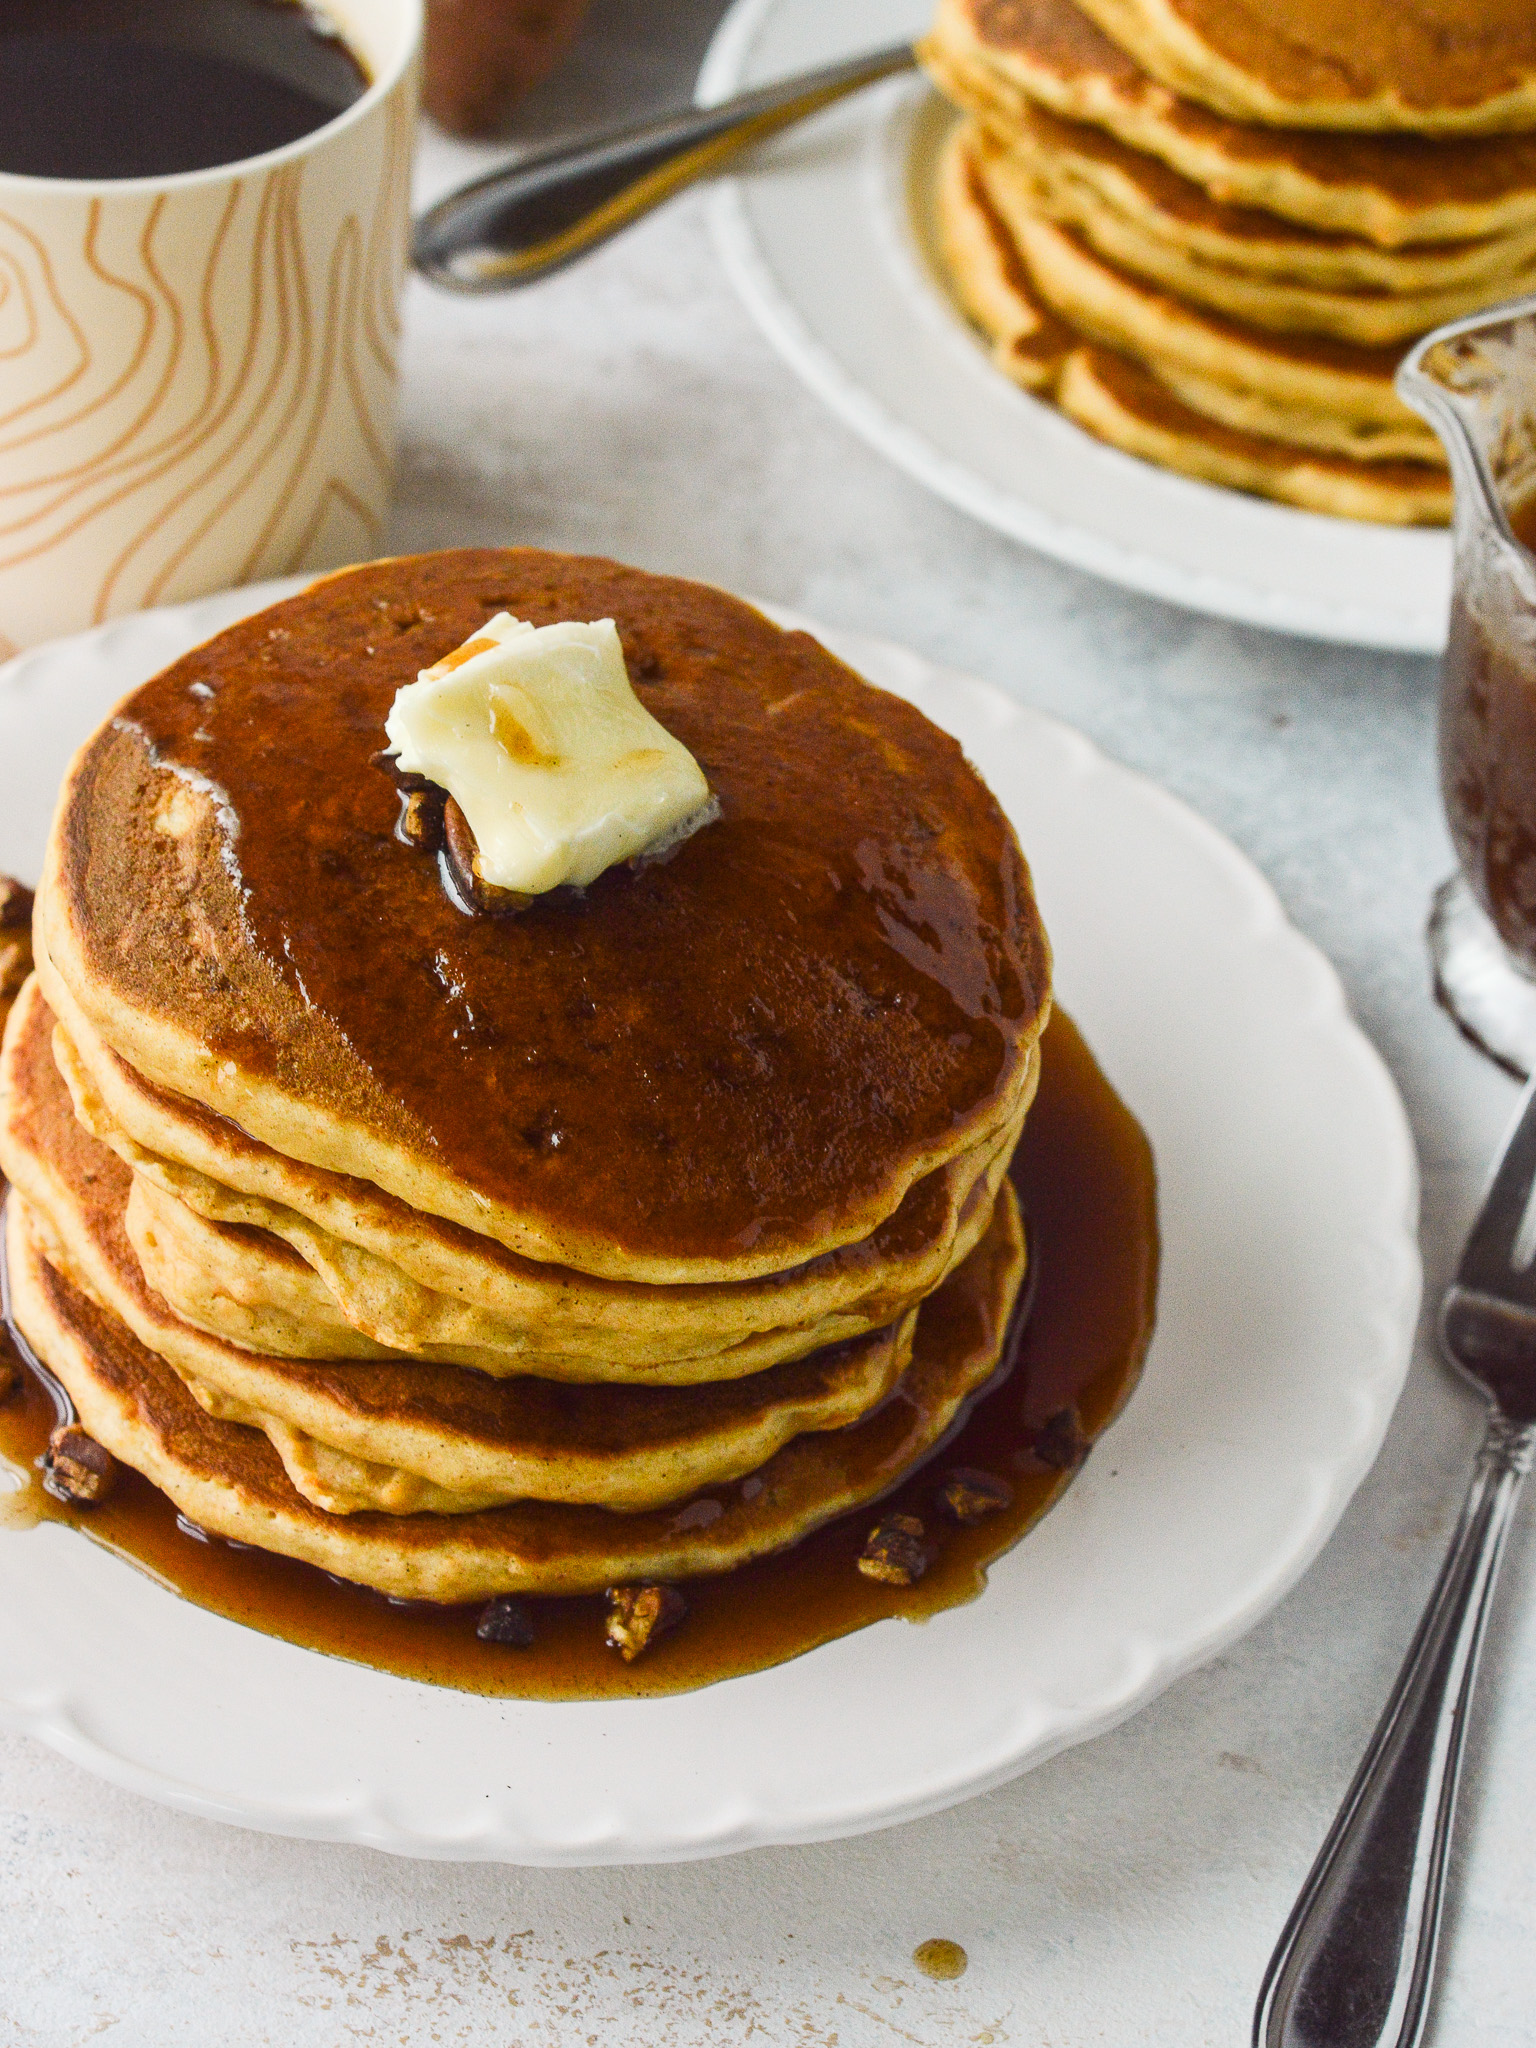 Table set for two with coffee, two stacks of pancakes, and a carafe of syrup.